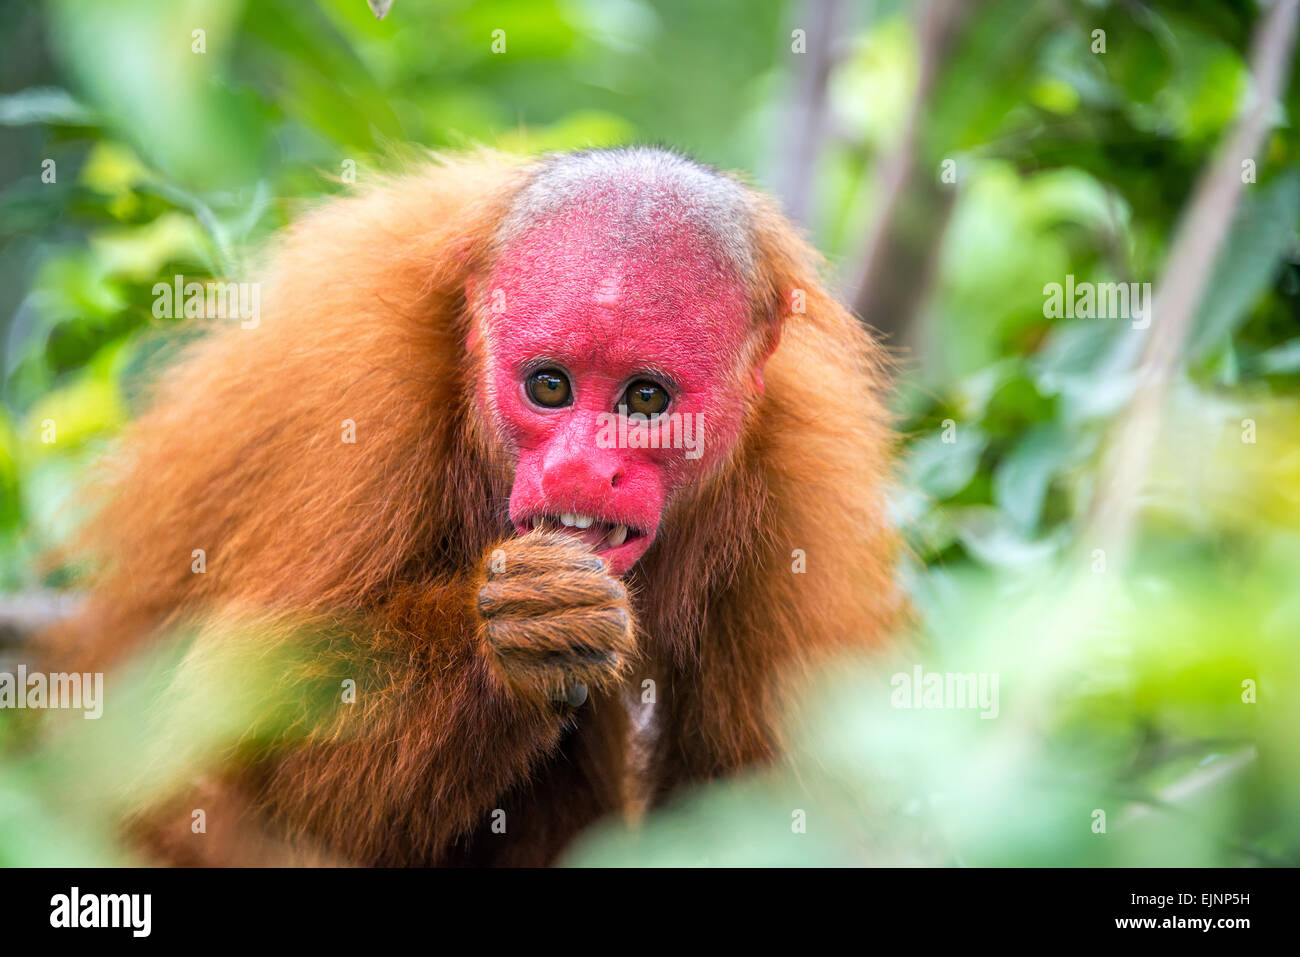 rainforest animal amazon monkey stockfotos rainforest animal amazon monkey bilder alamy. Black Bedroom Furniture Sets. Home Design Ideas